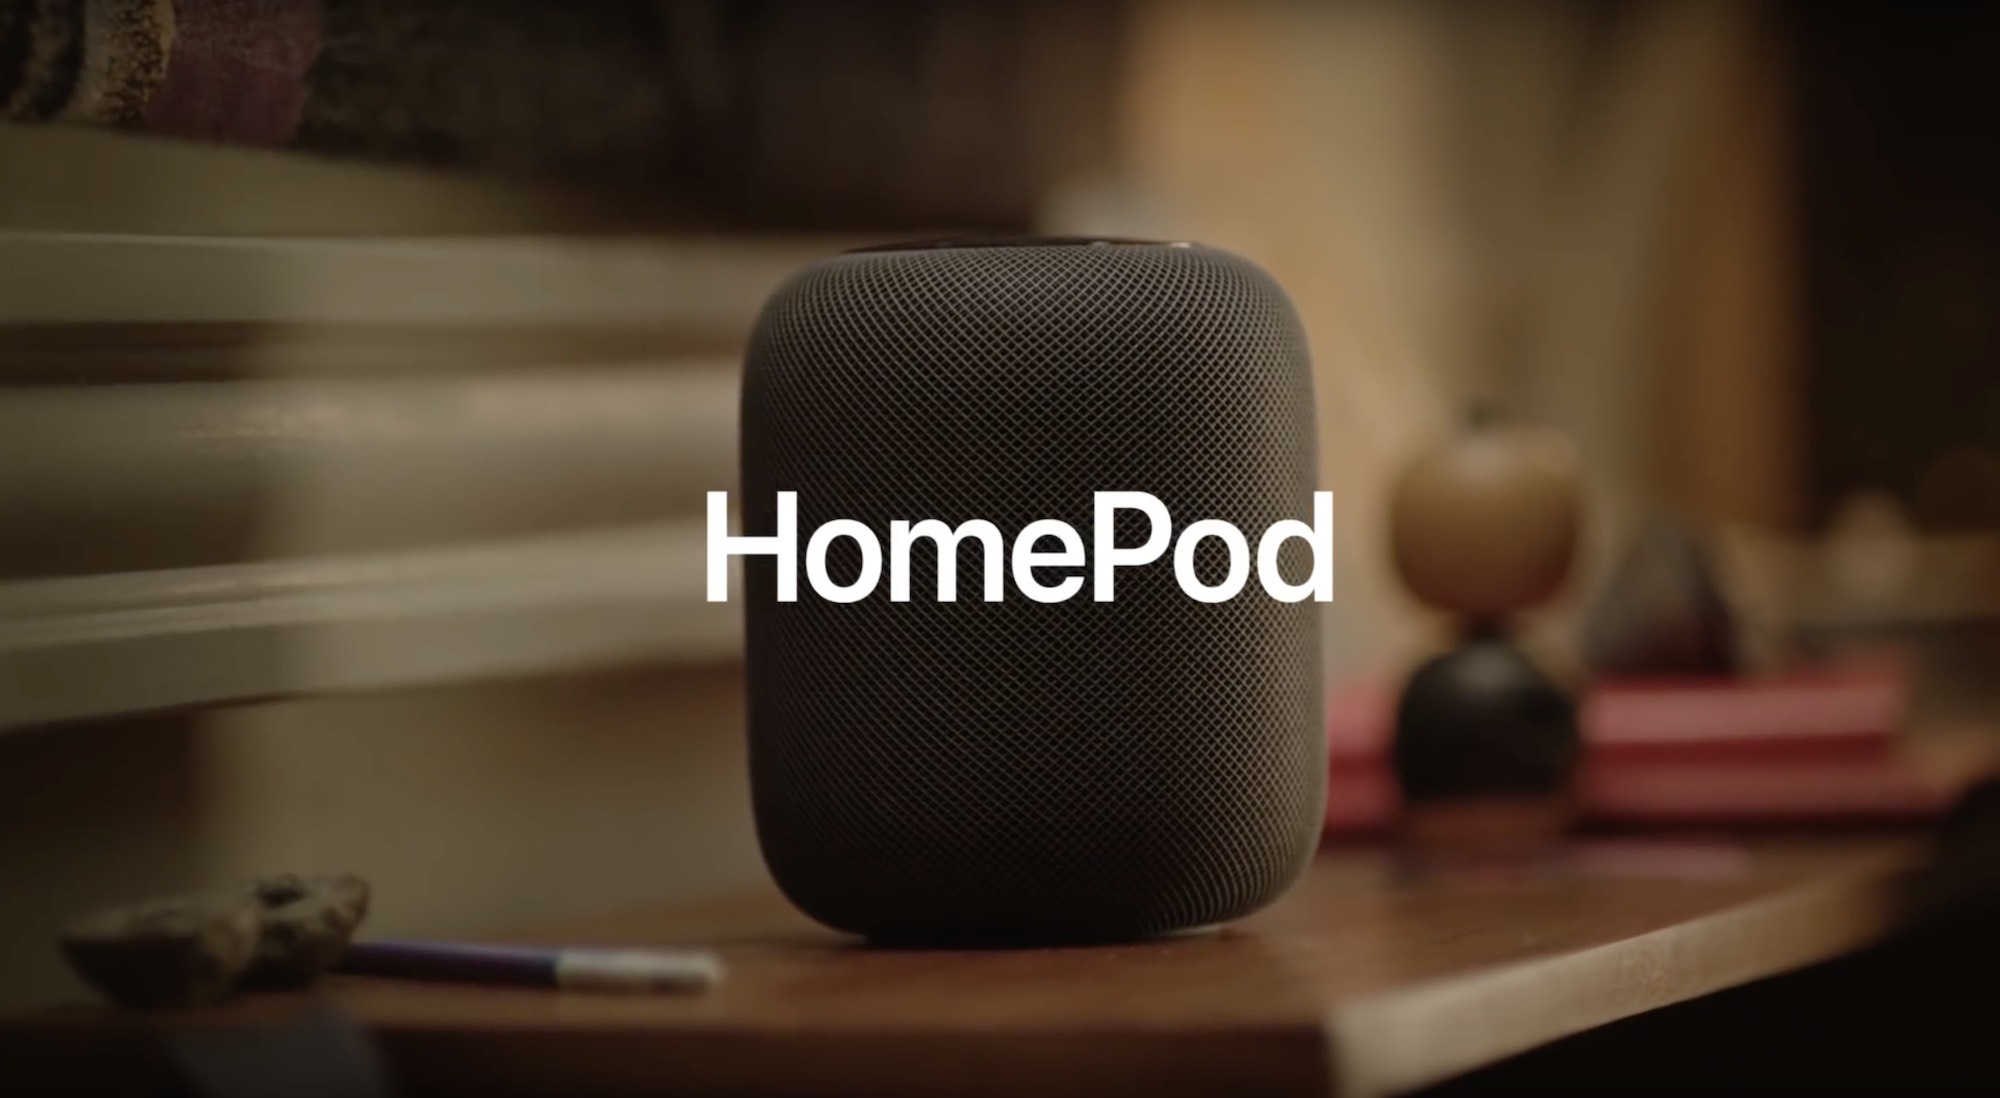 Spike Jonze directs gorgeous HomePod mini film starring